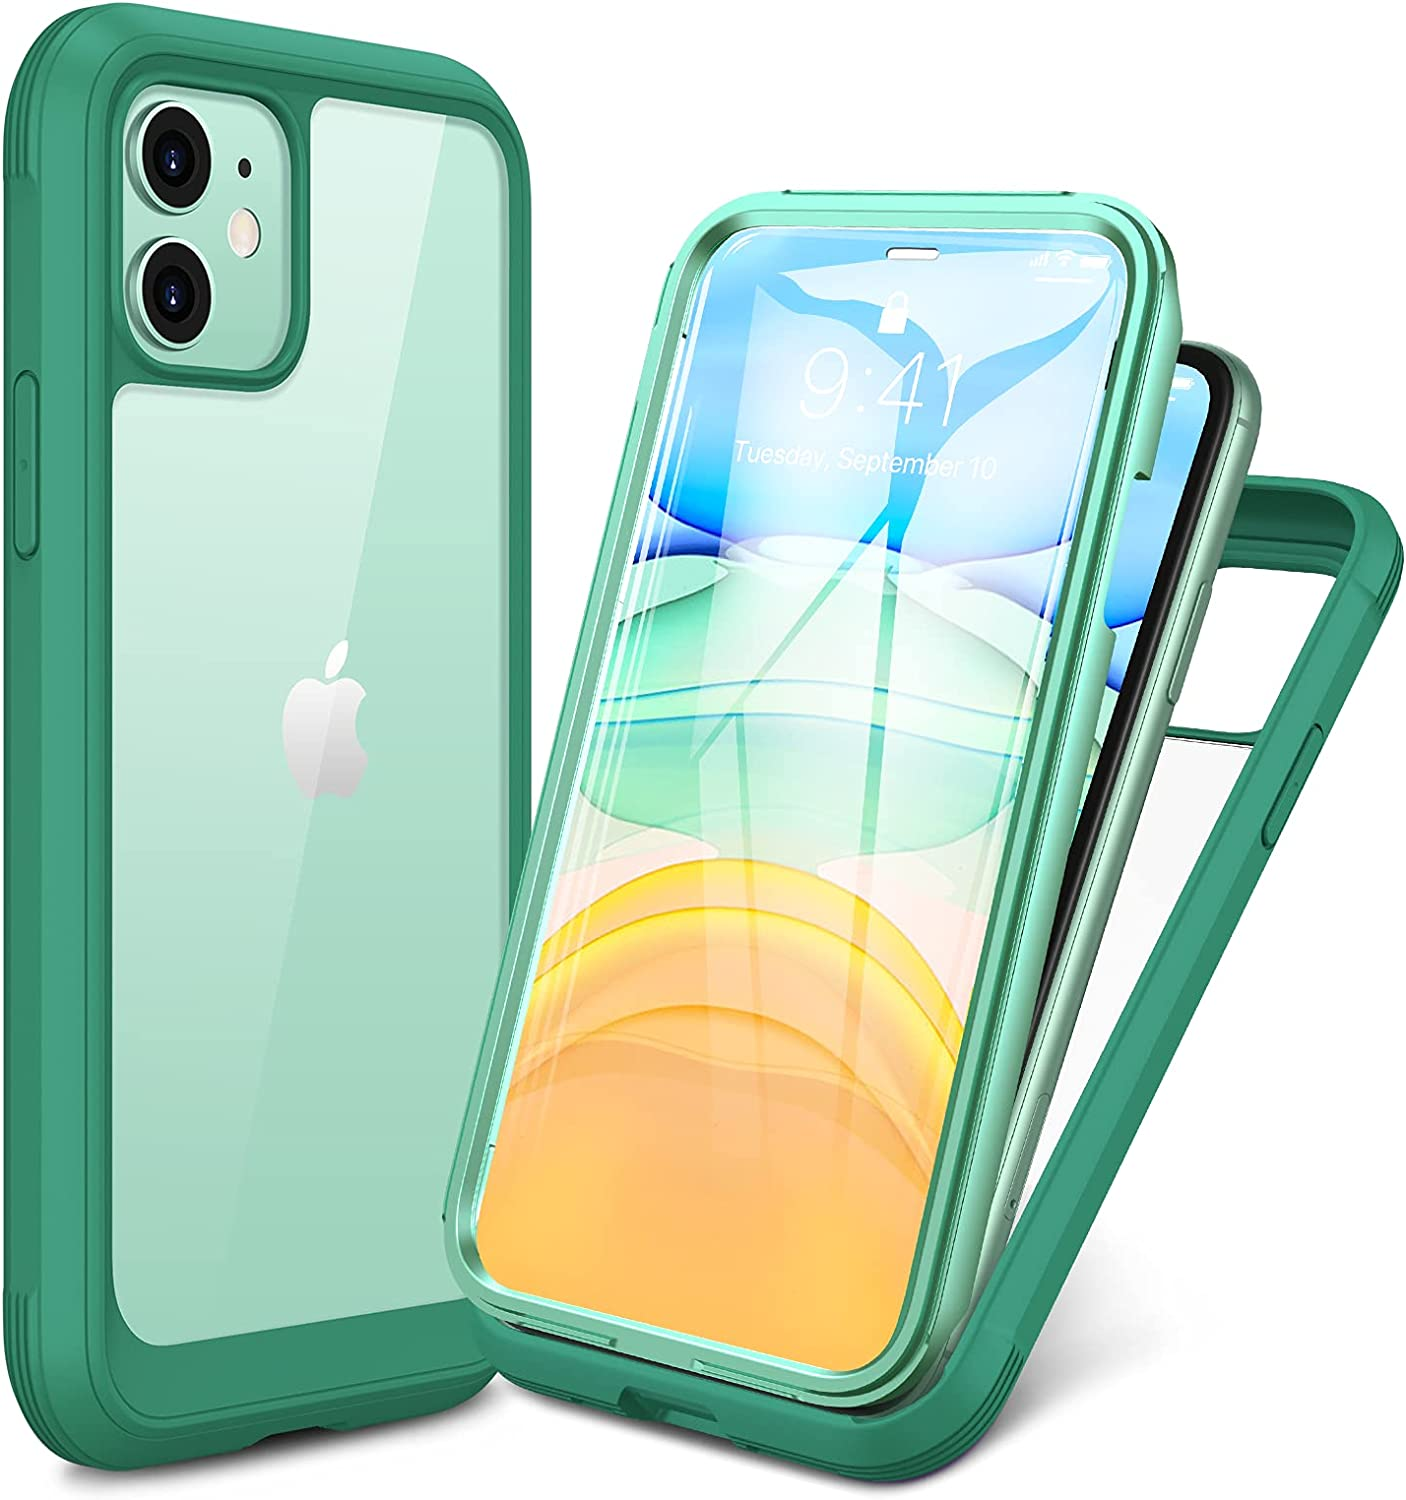 Miracase Glass+ Case for iPhone 11 6.1 inch, 2021 Upgrade Full-Body Clear Bumper Case with Built-in 9H Tempered Glass Screen Protector for iPhone 11, Light Green